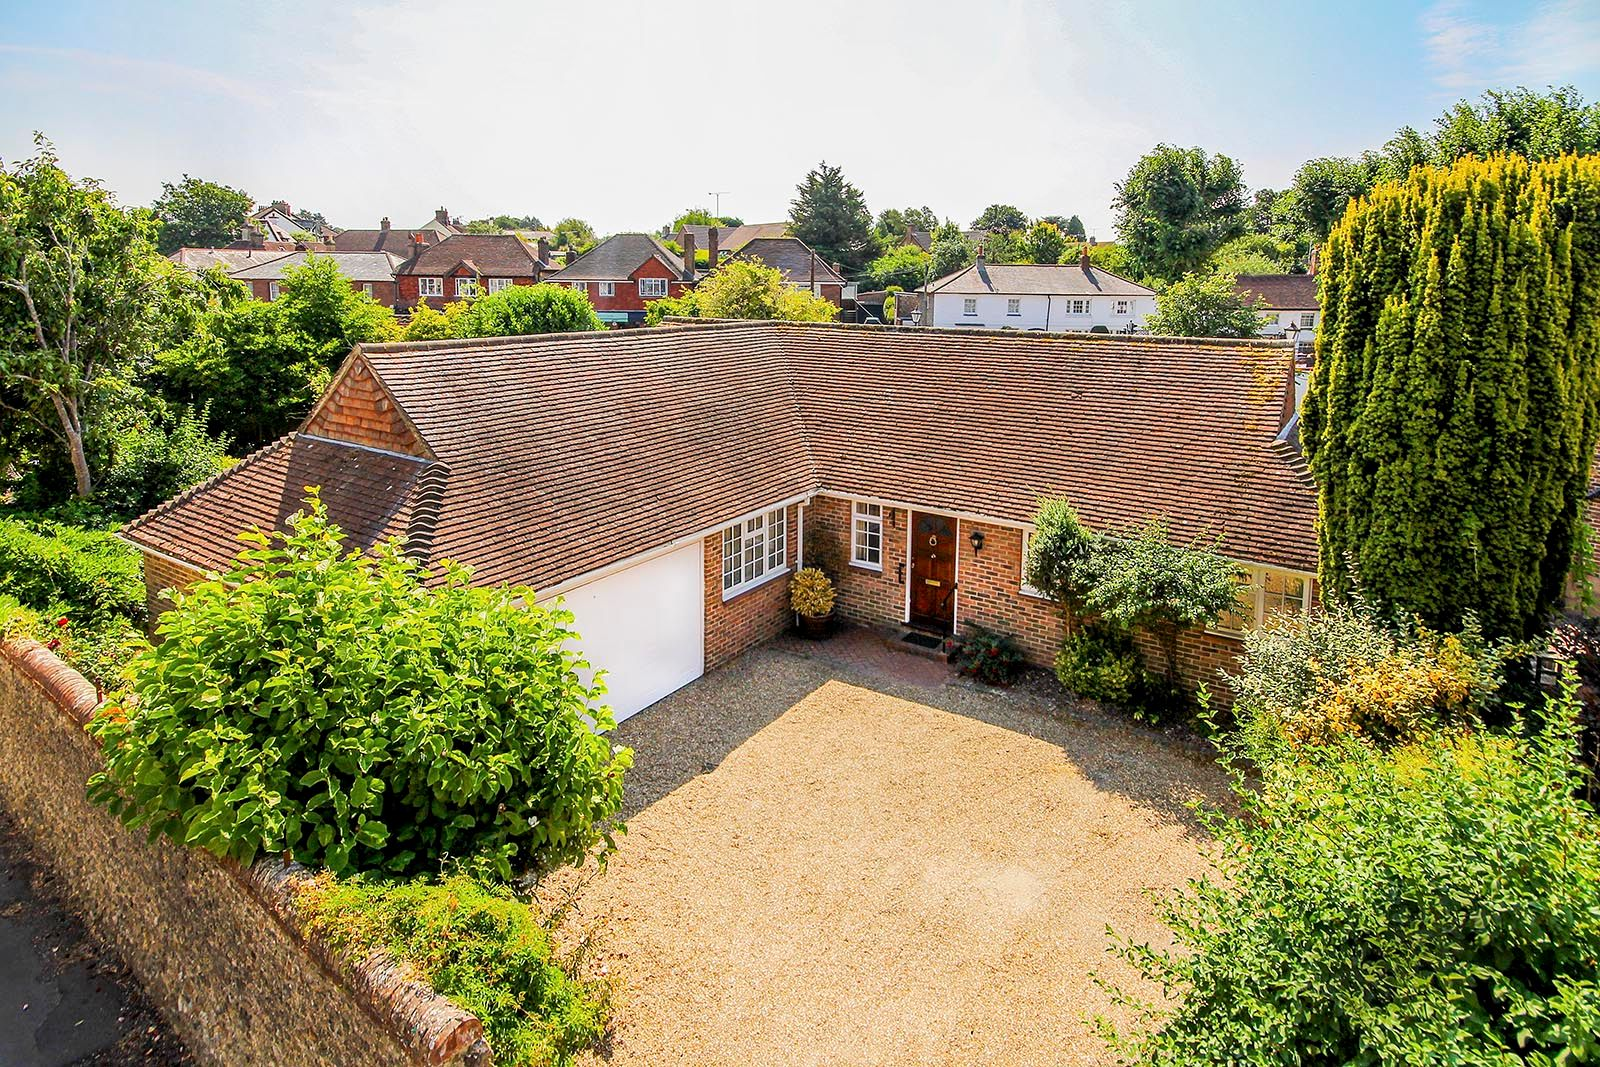 3 bed Bungalow for sale in Angmering - Main (Property Image 0)